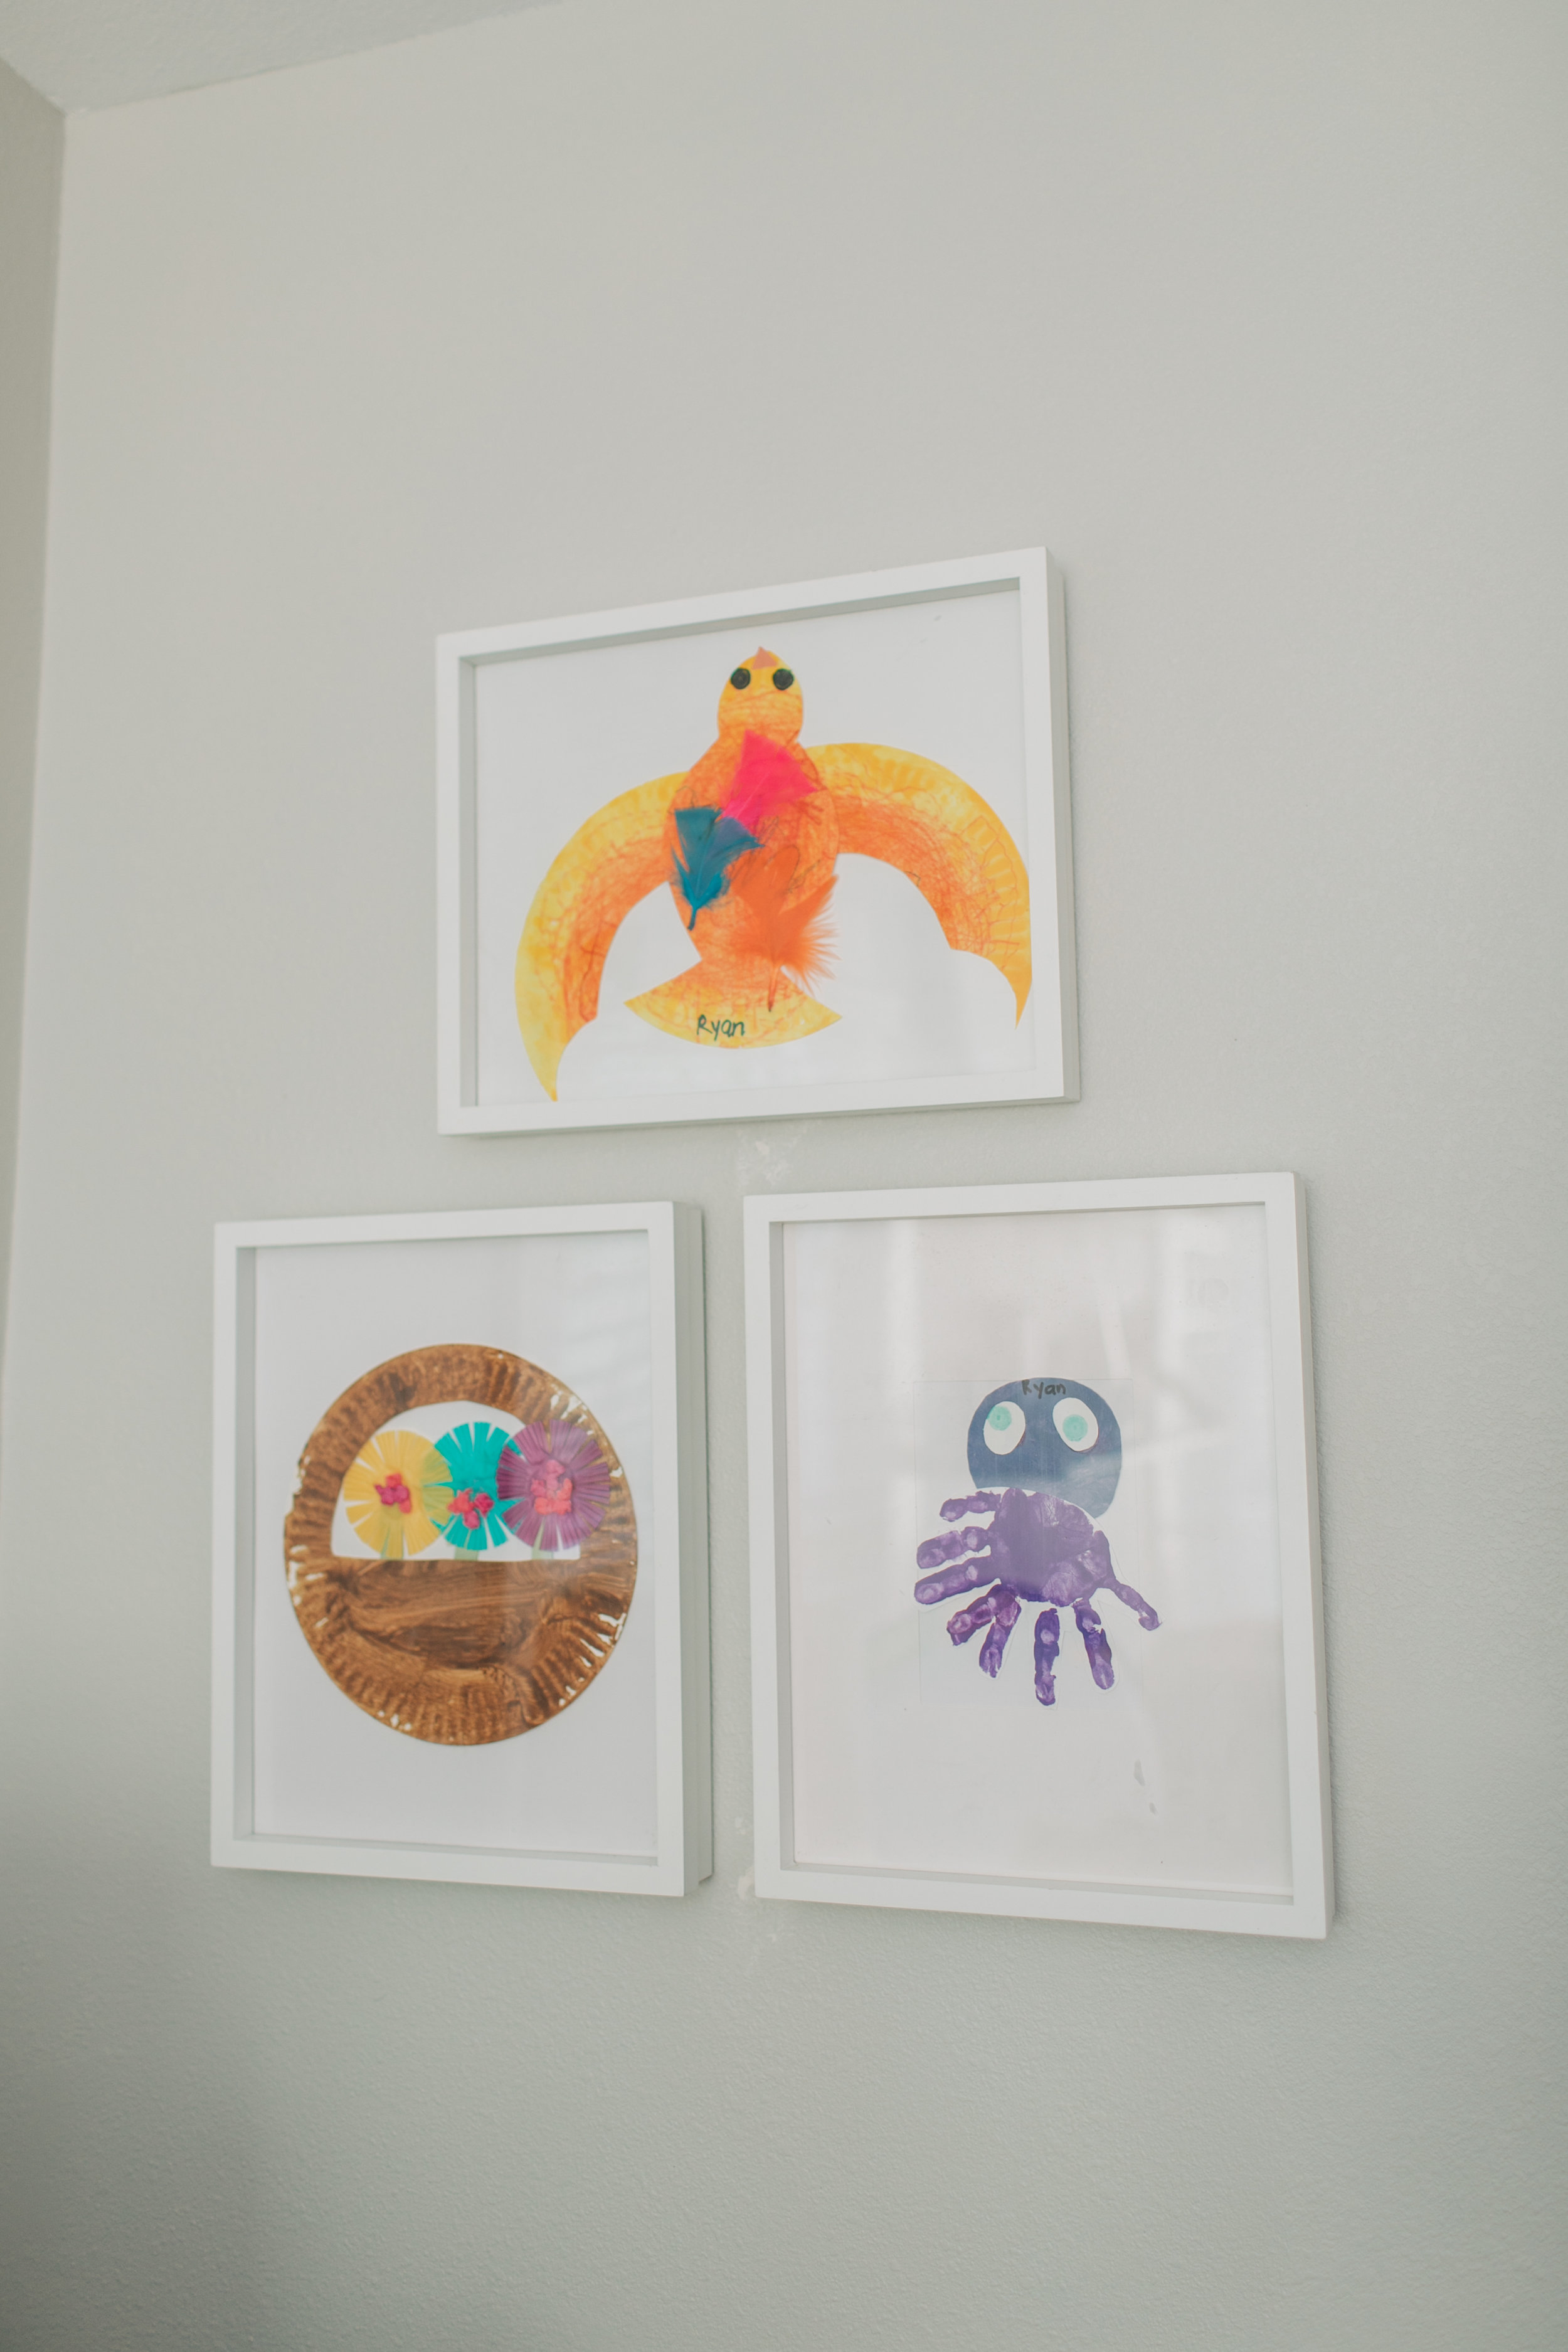 We also have some of Ryan's artwork framed for Mila's nursery because I loved the thought of his artwork in her room. They are still hanging in there and she loves them. I used to think that Ryan made these all the while knowing he was making them for his little sister. Now Mila says Ryan made those for her so, I have to believe he did.  Again, if Mila ever wanted to remove them I would. But for now she seems to enjoy the little pieces of her big brother within her space.